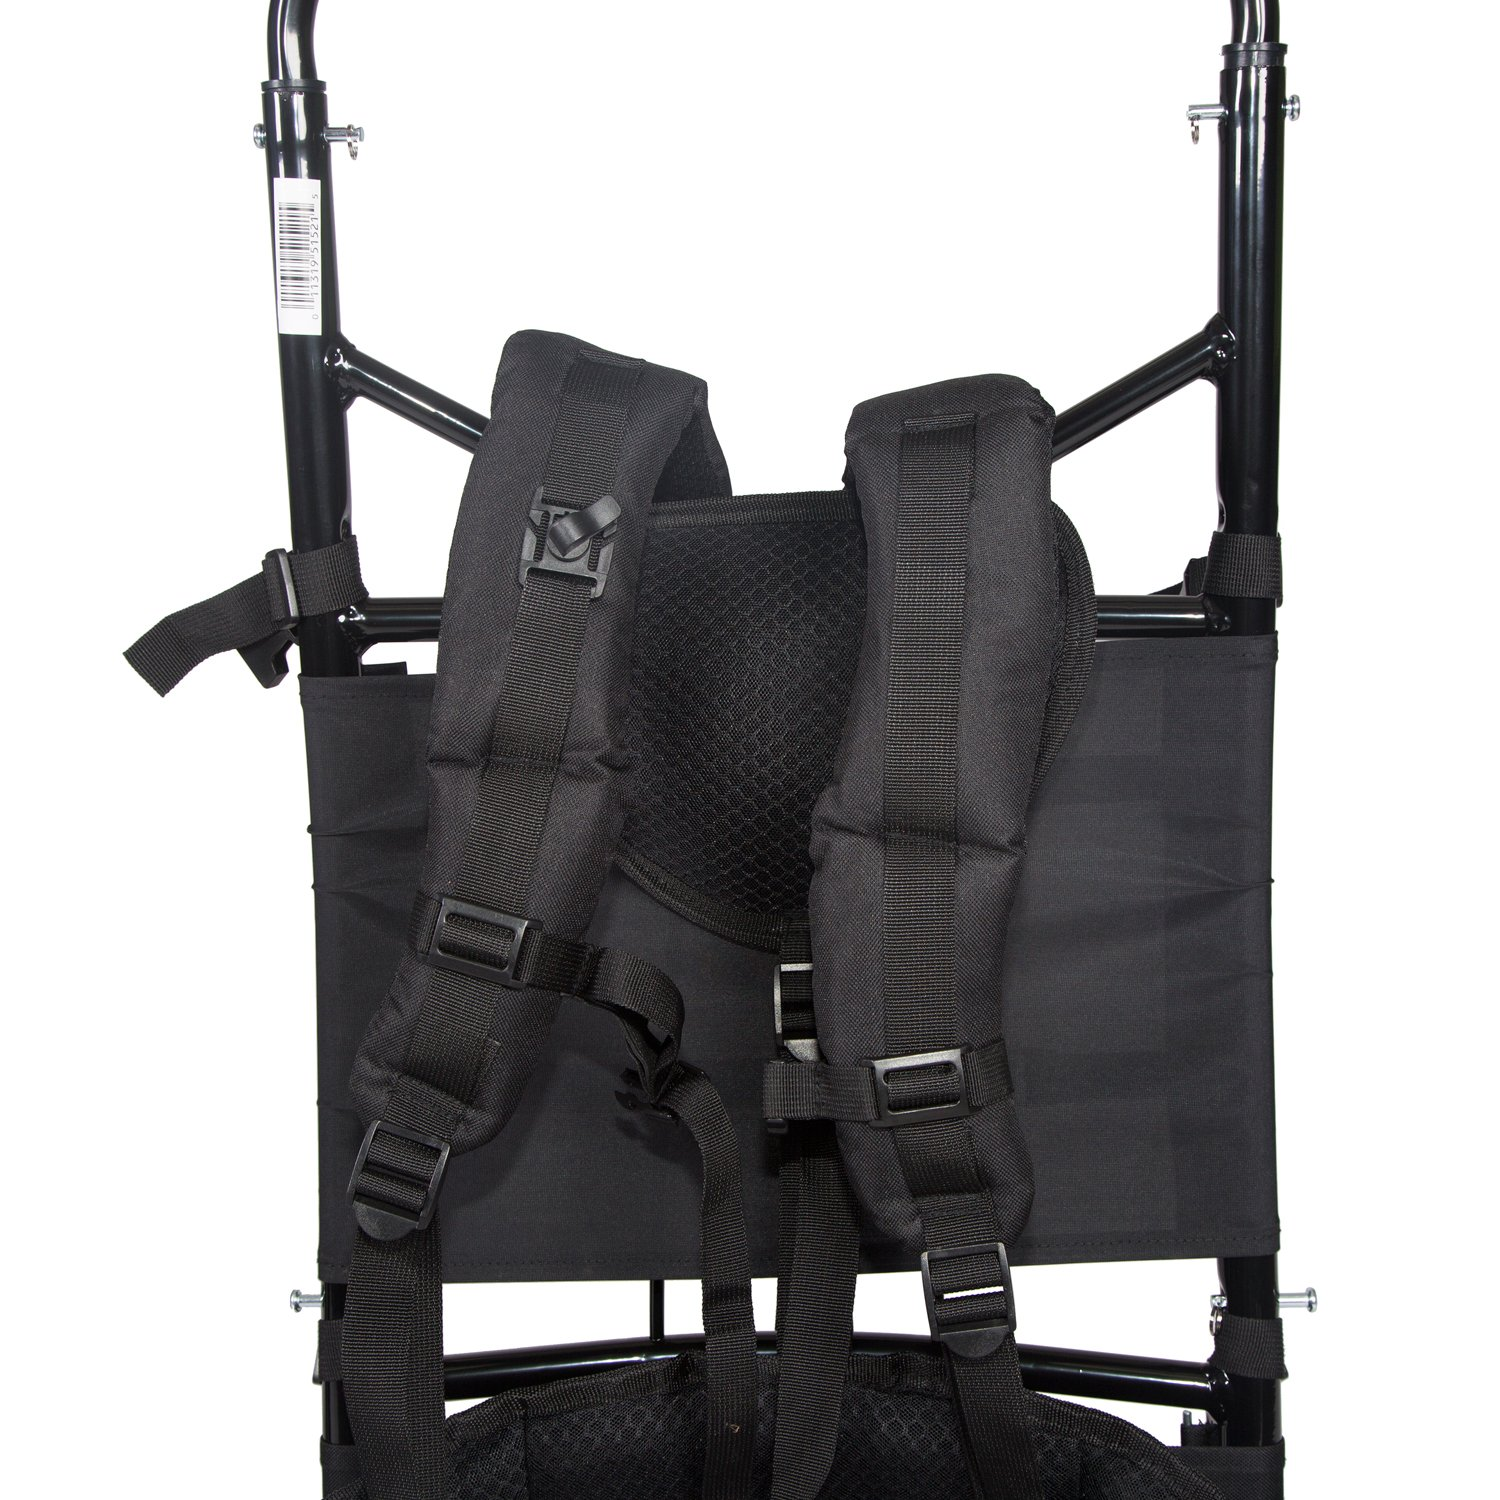 Stansport Deluxe Freighter Aluminum Pack Frame by Stansport (Image #3)